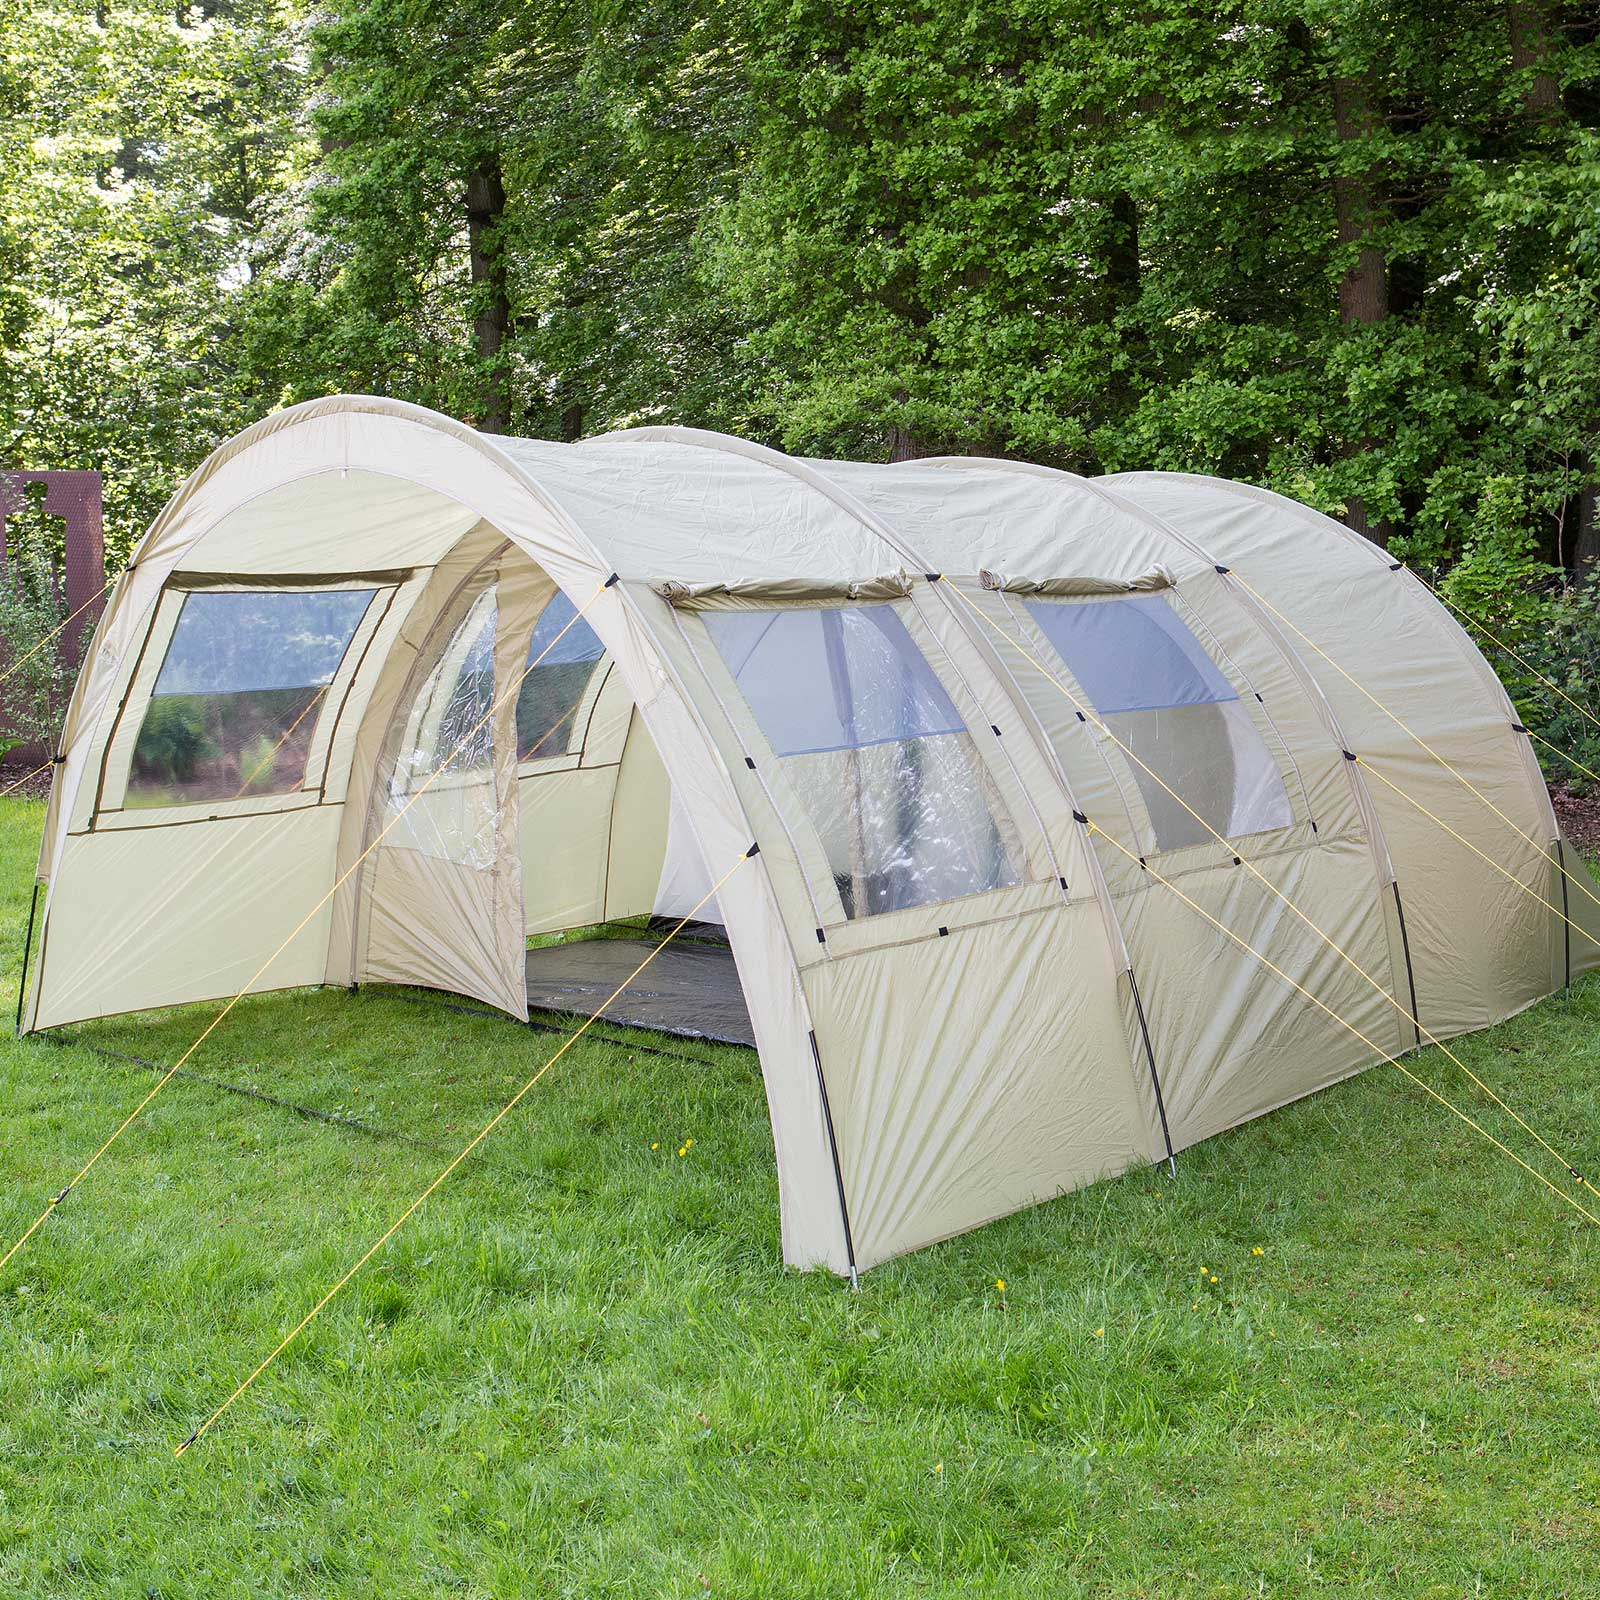 skandika kemi 4 person man family tunnel tent camp 3000mm water column khaki new ebay. Black Bedroom Furniture Sets. Home Design Ideas